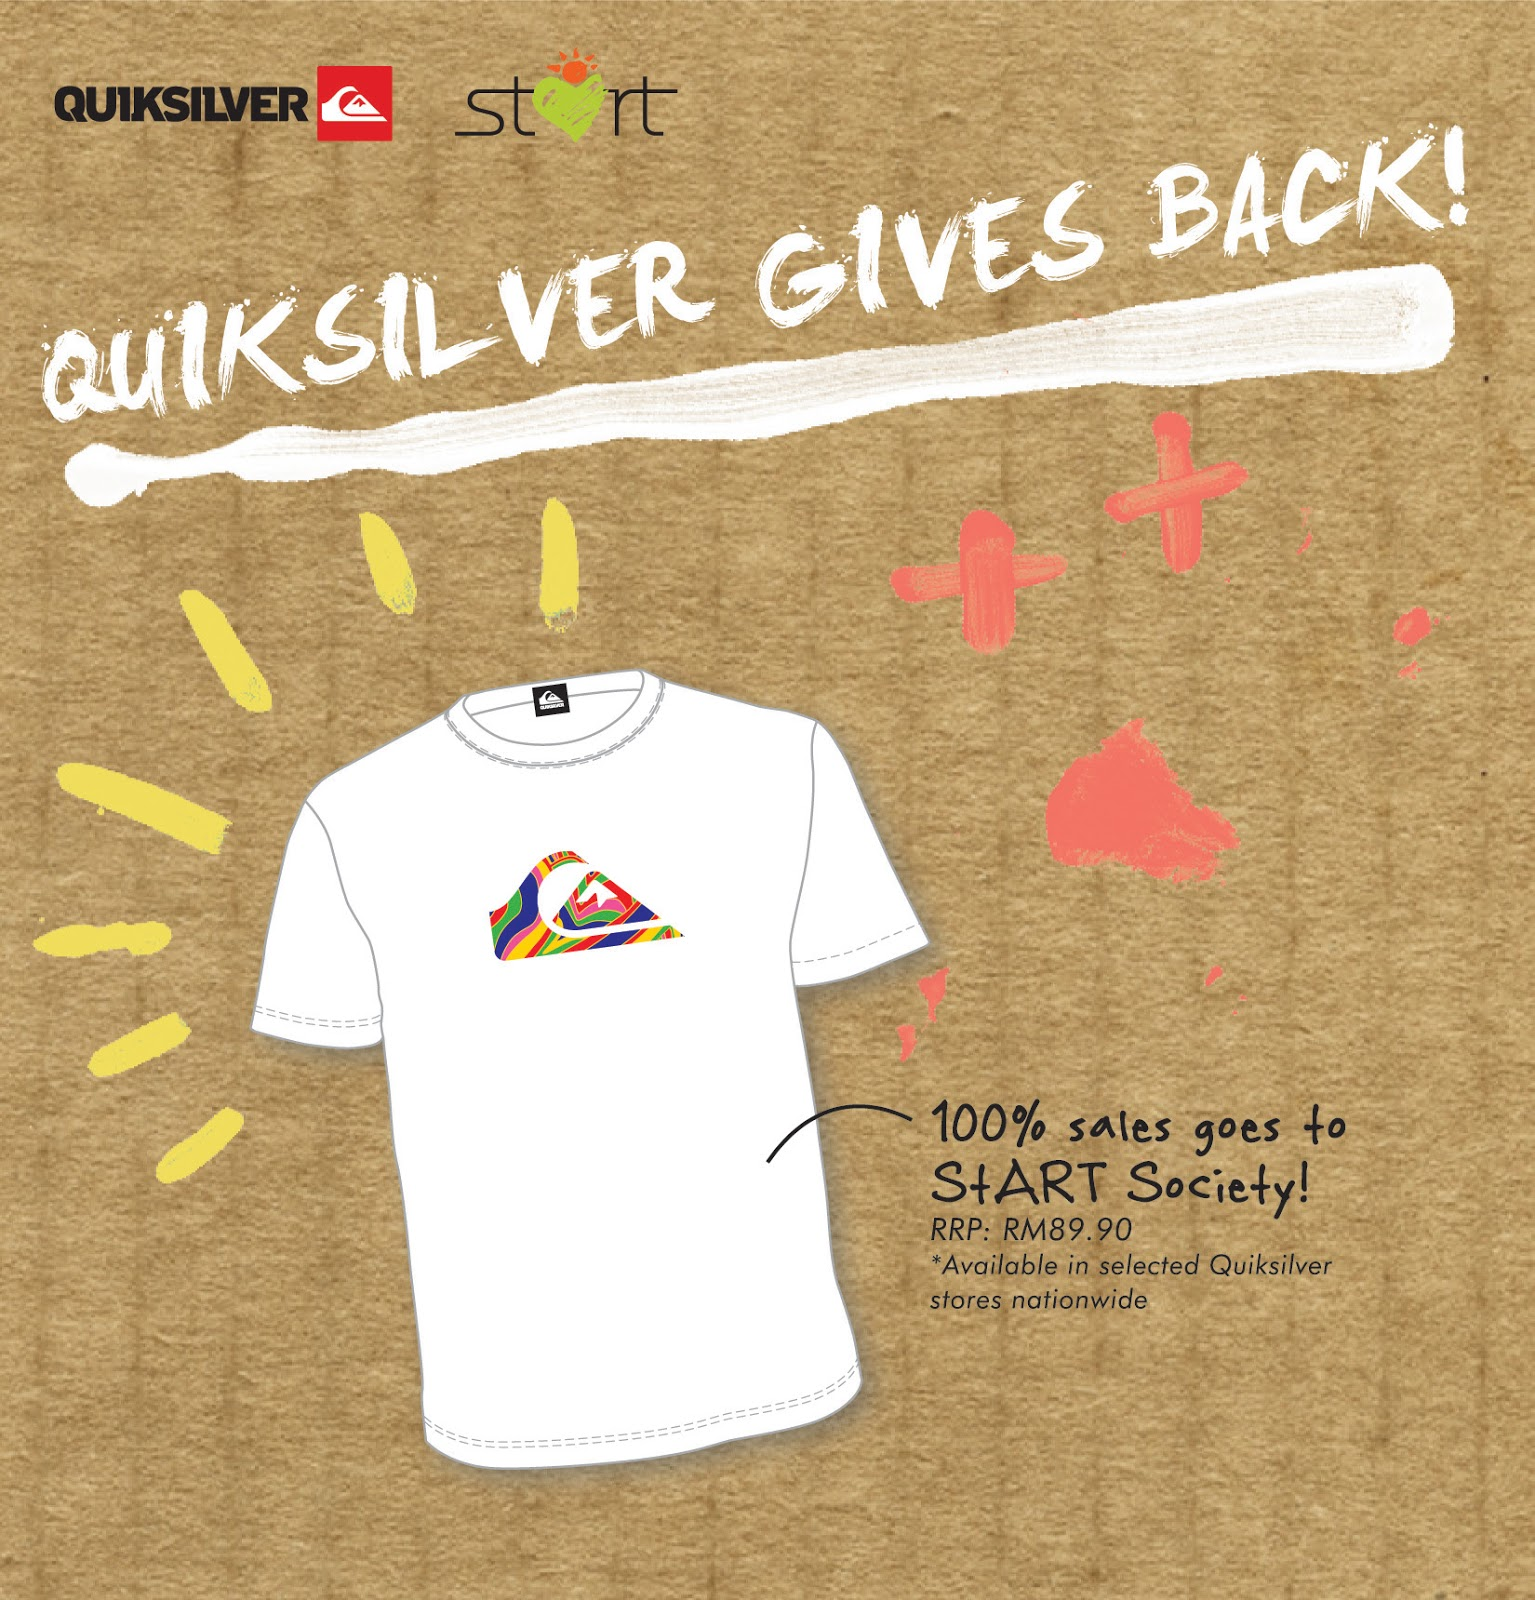 Quiksilver shirt design